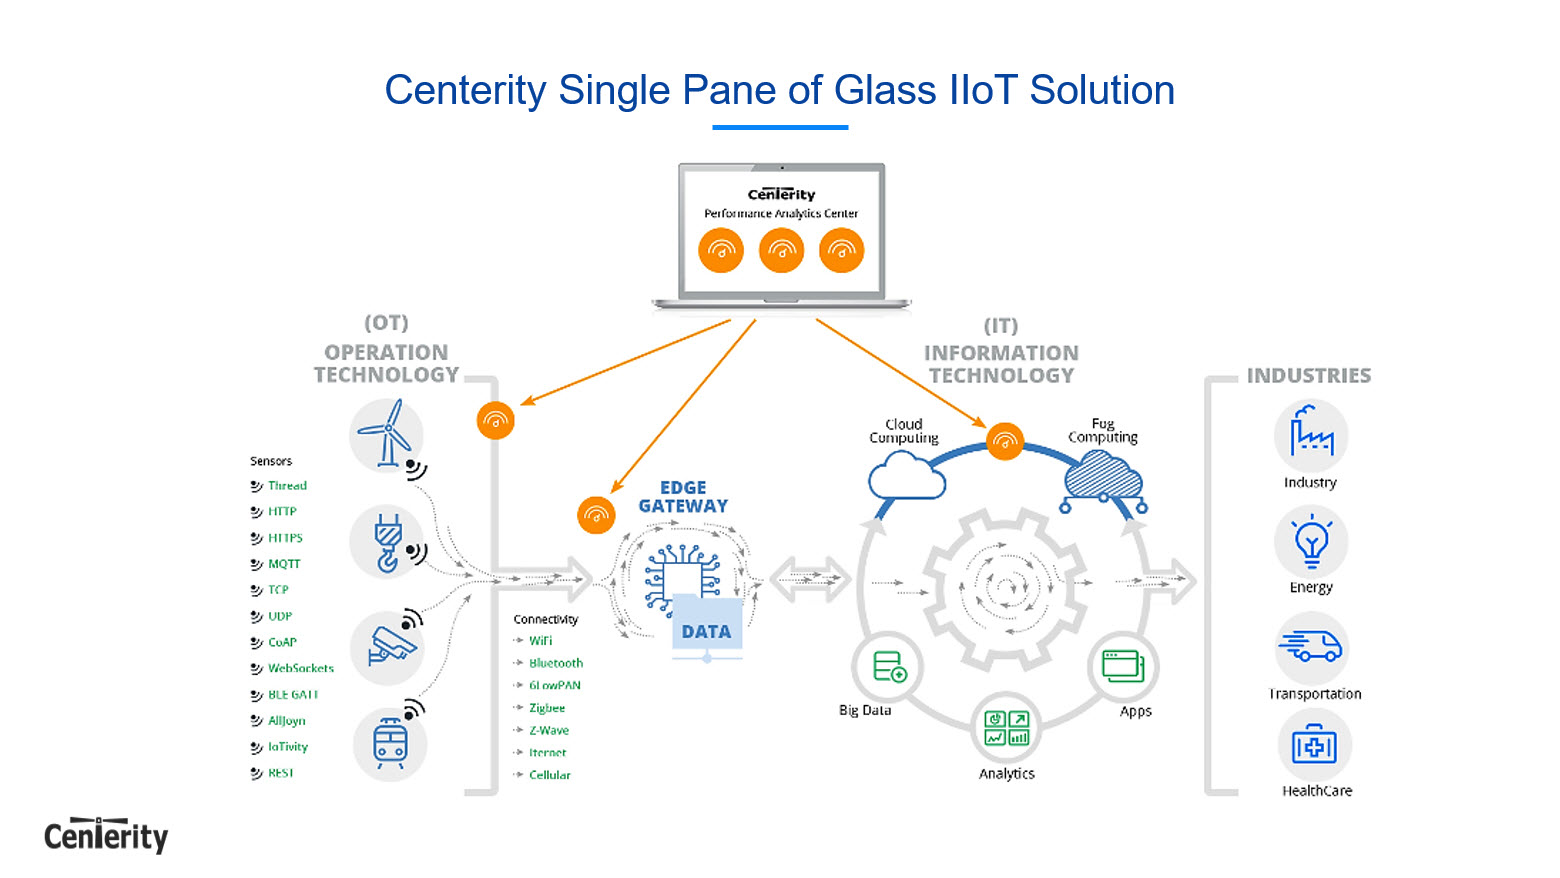 Centerity Systems John Speck Predix Operational Technology single pane of glass iiot solution